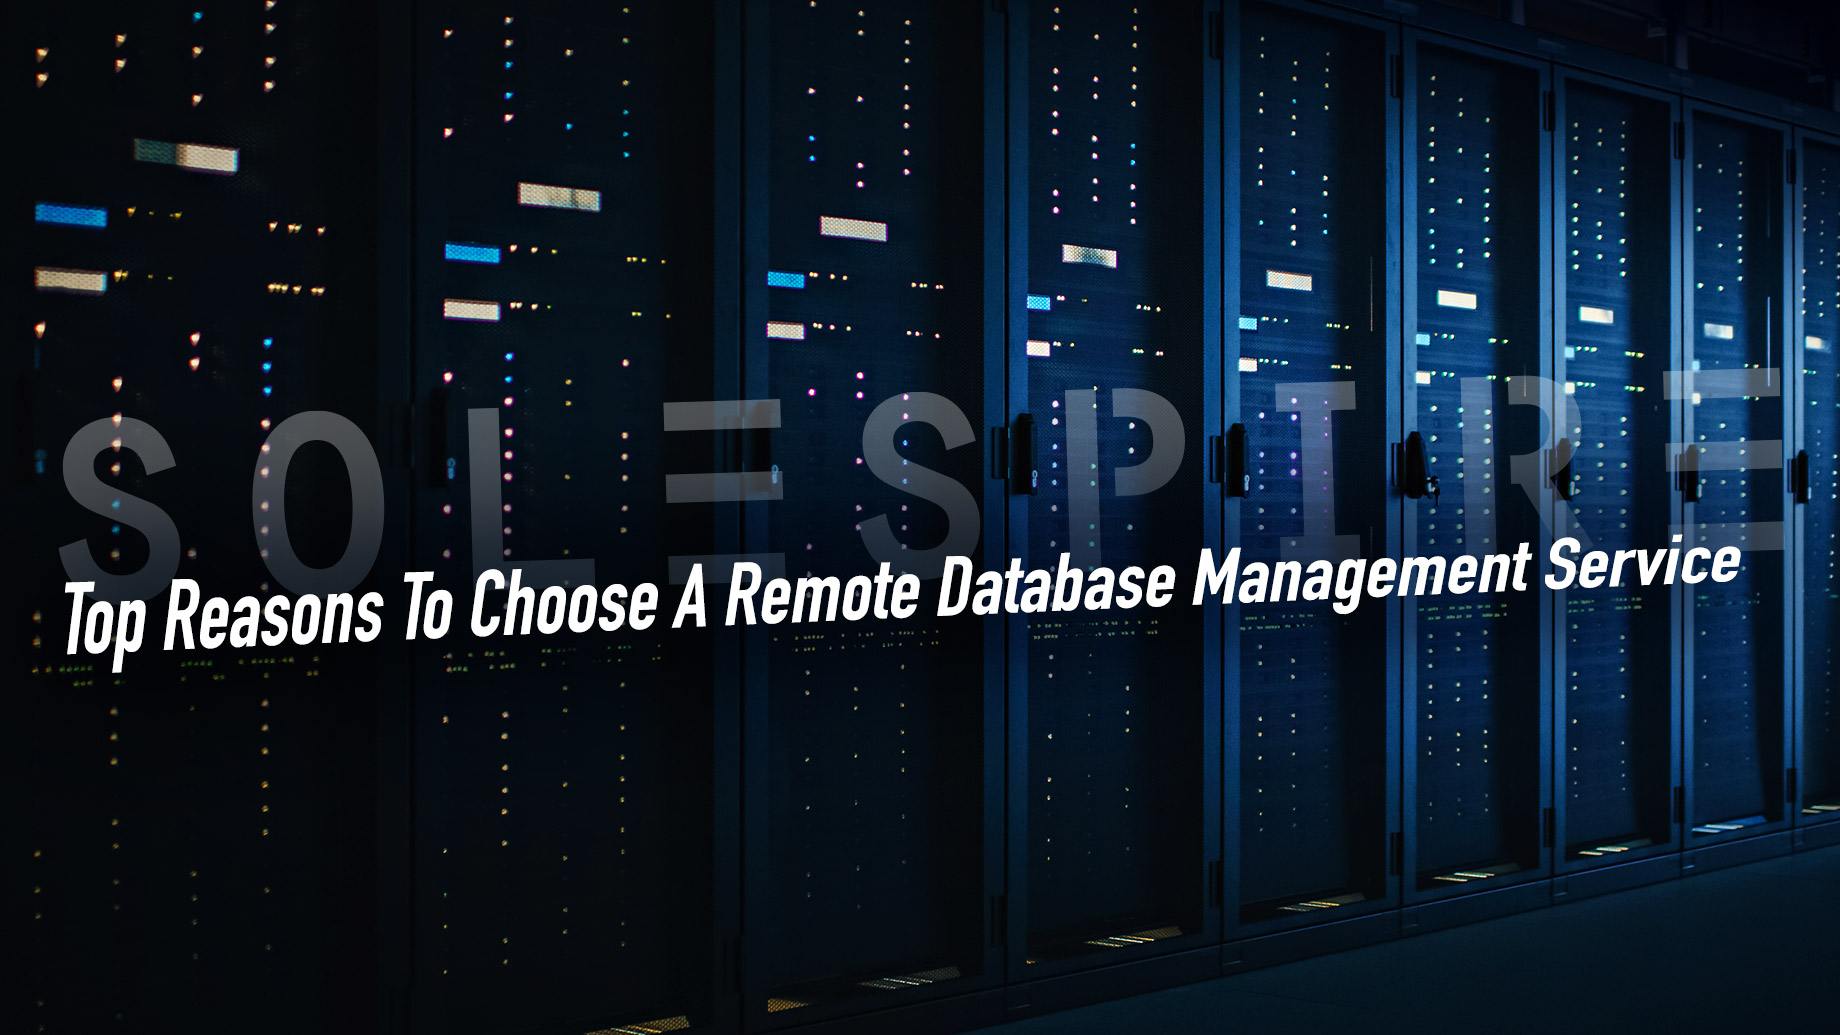 Top Reasons To Choose A Remote Database Management Service